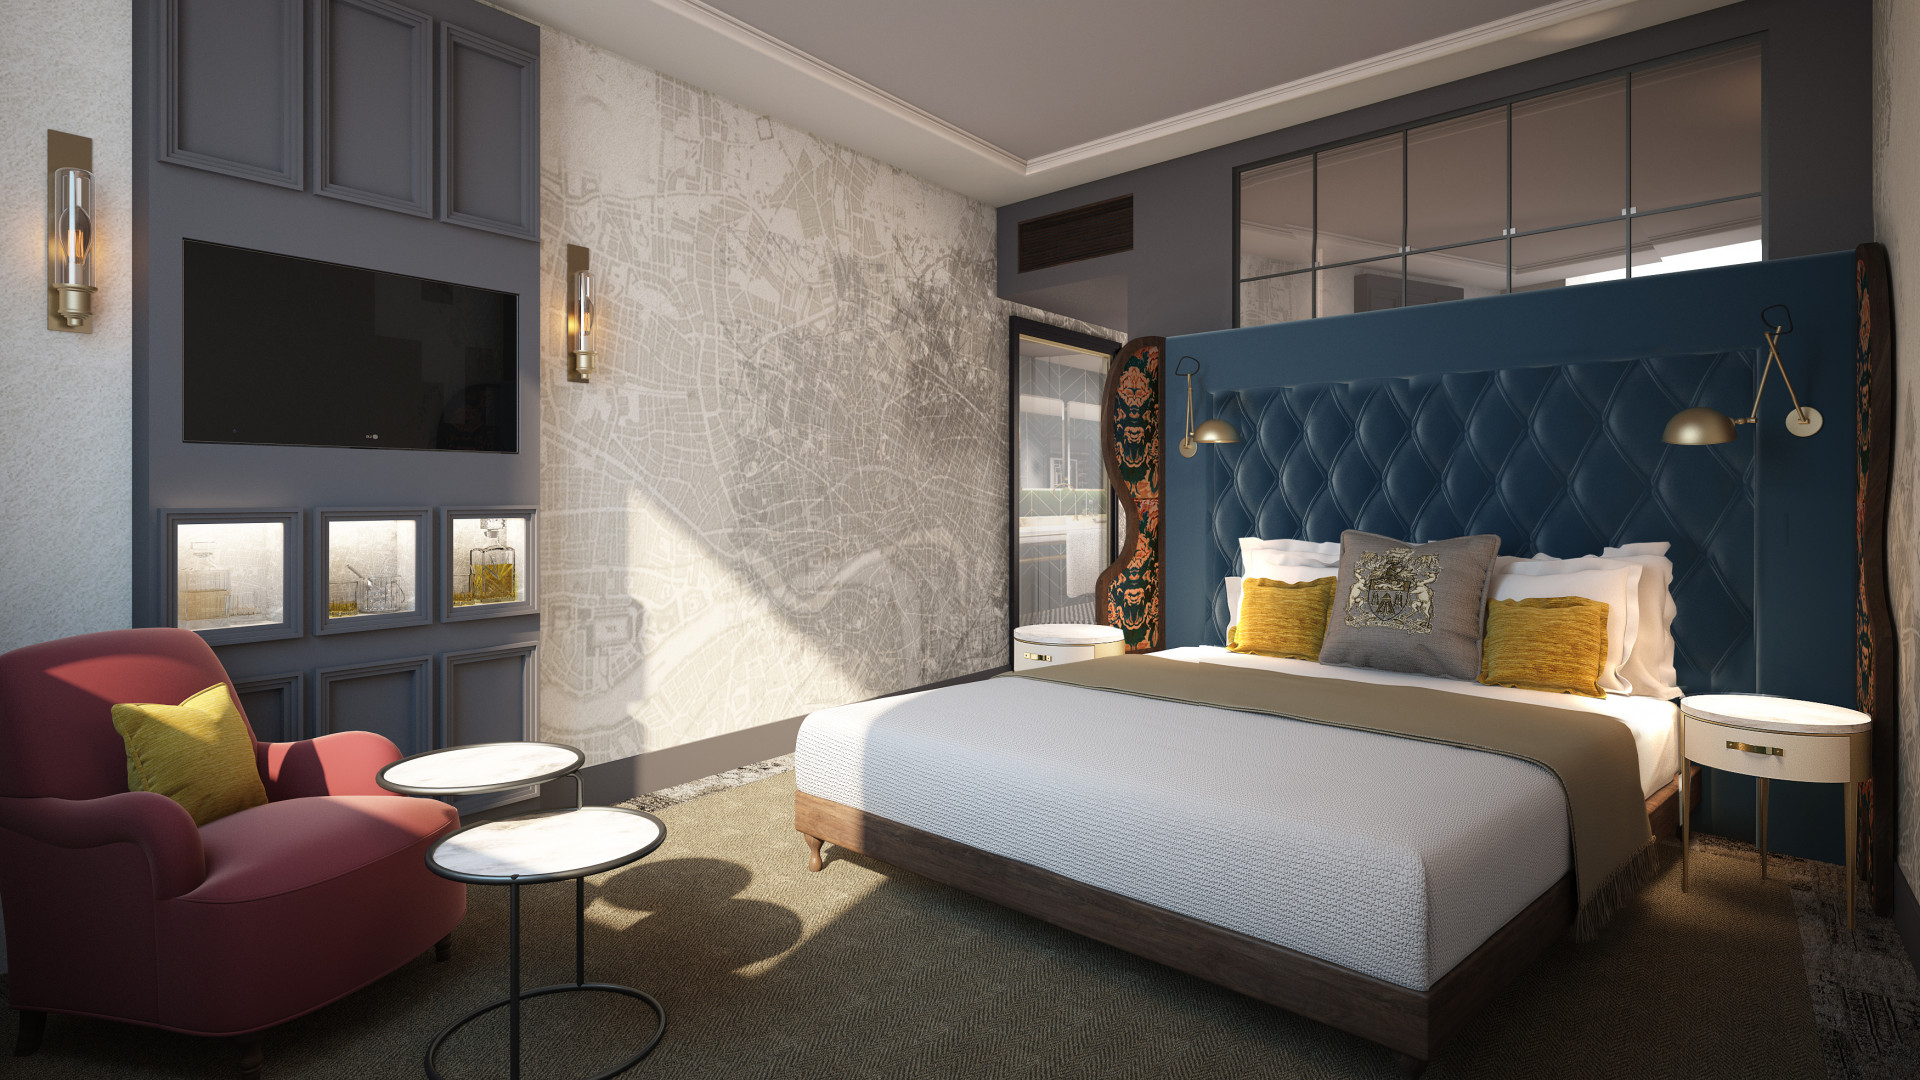 Guestroom design at the Vintry & Mercer hotel